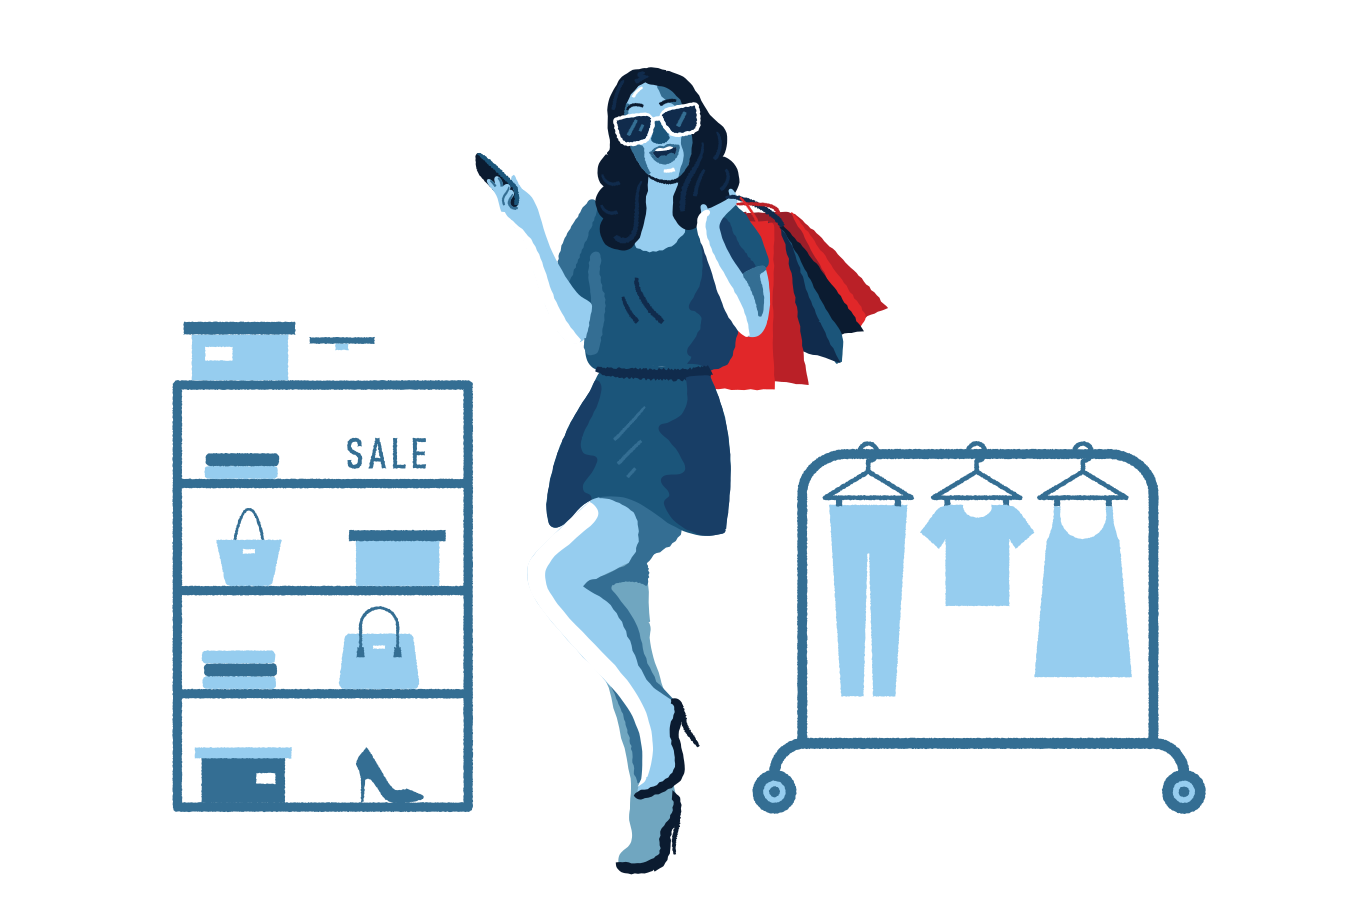 style Sale Vector images in PNG and SVG   Icons8 Illustrations